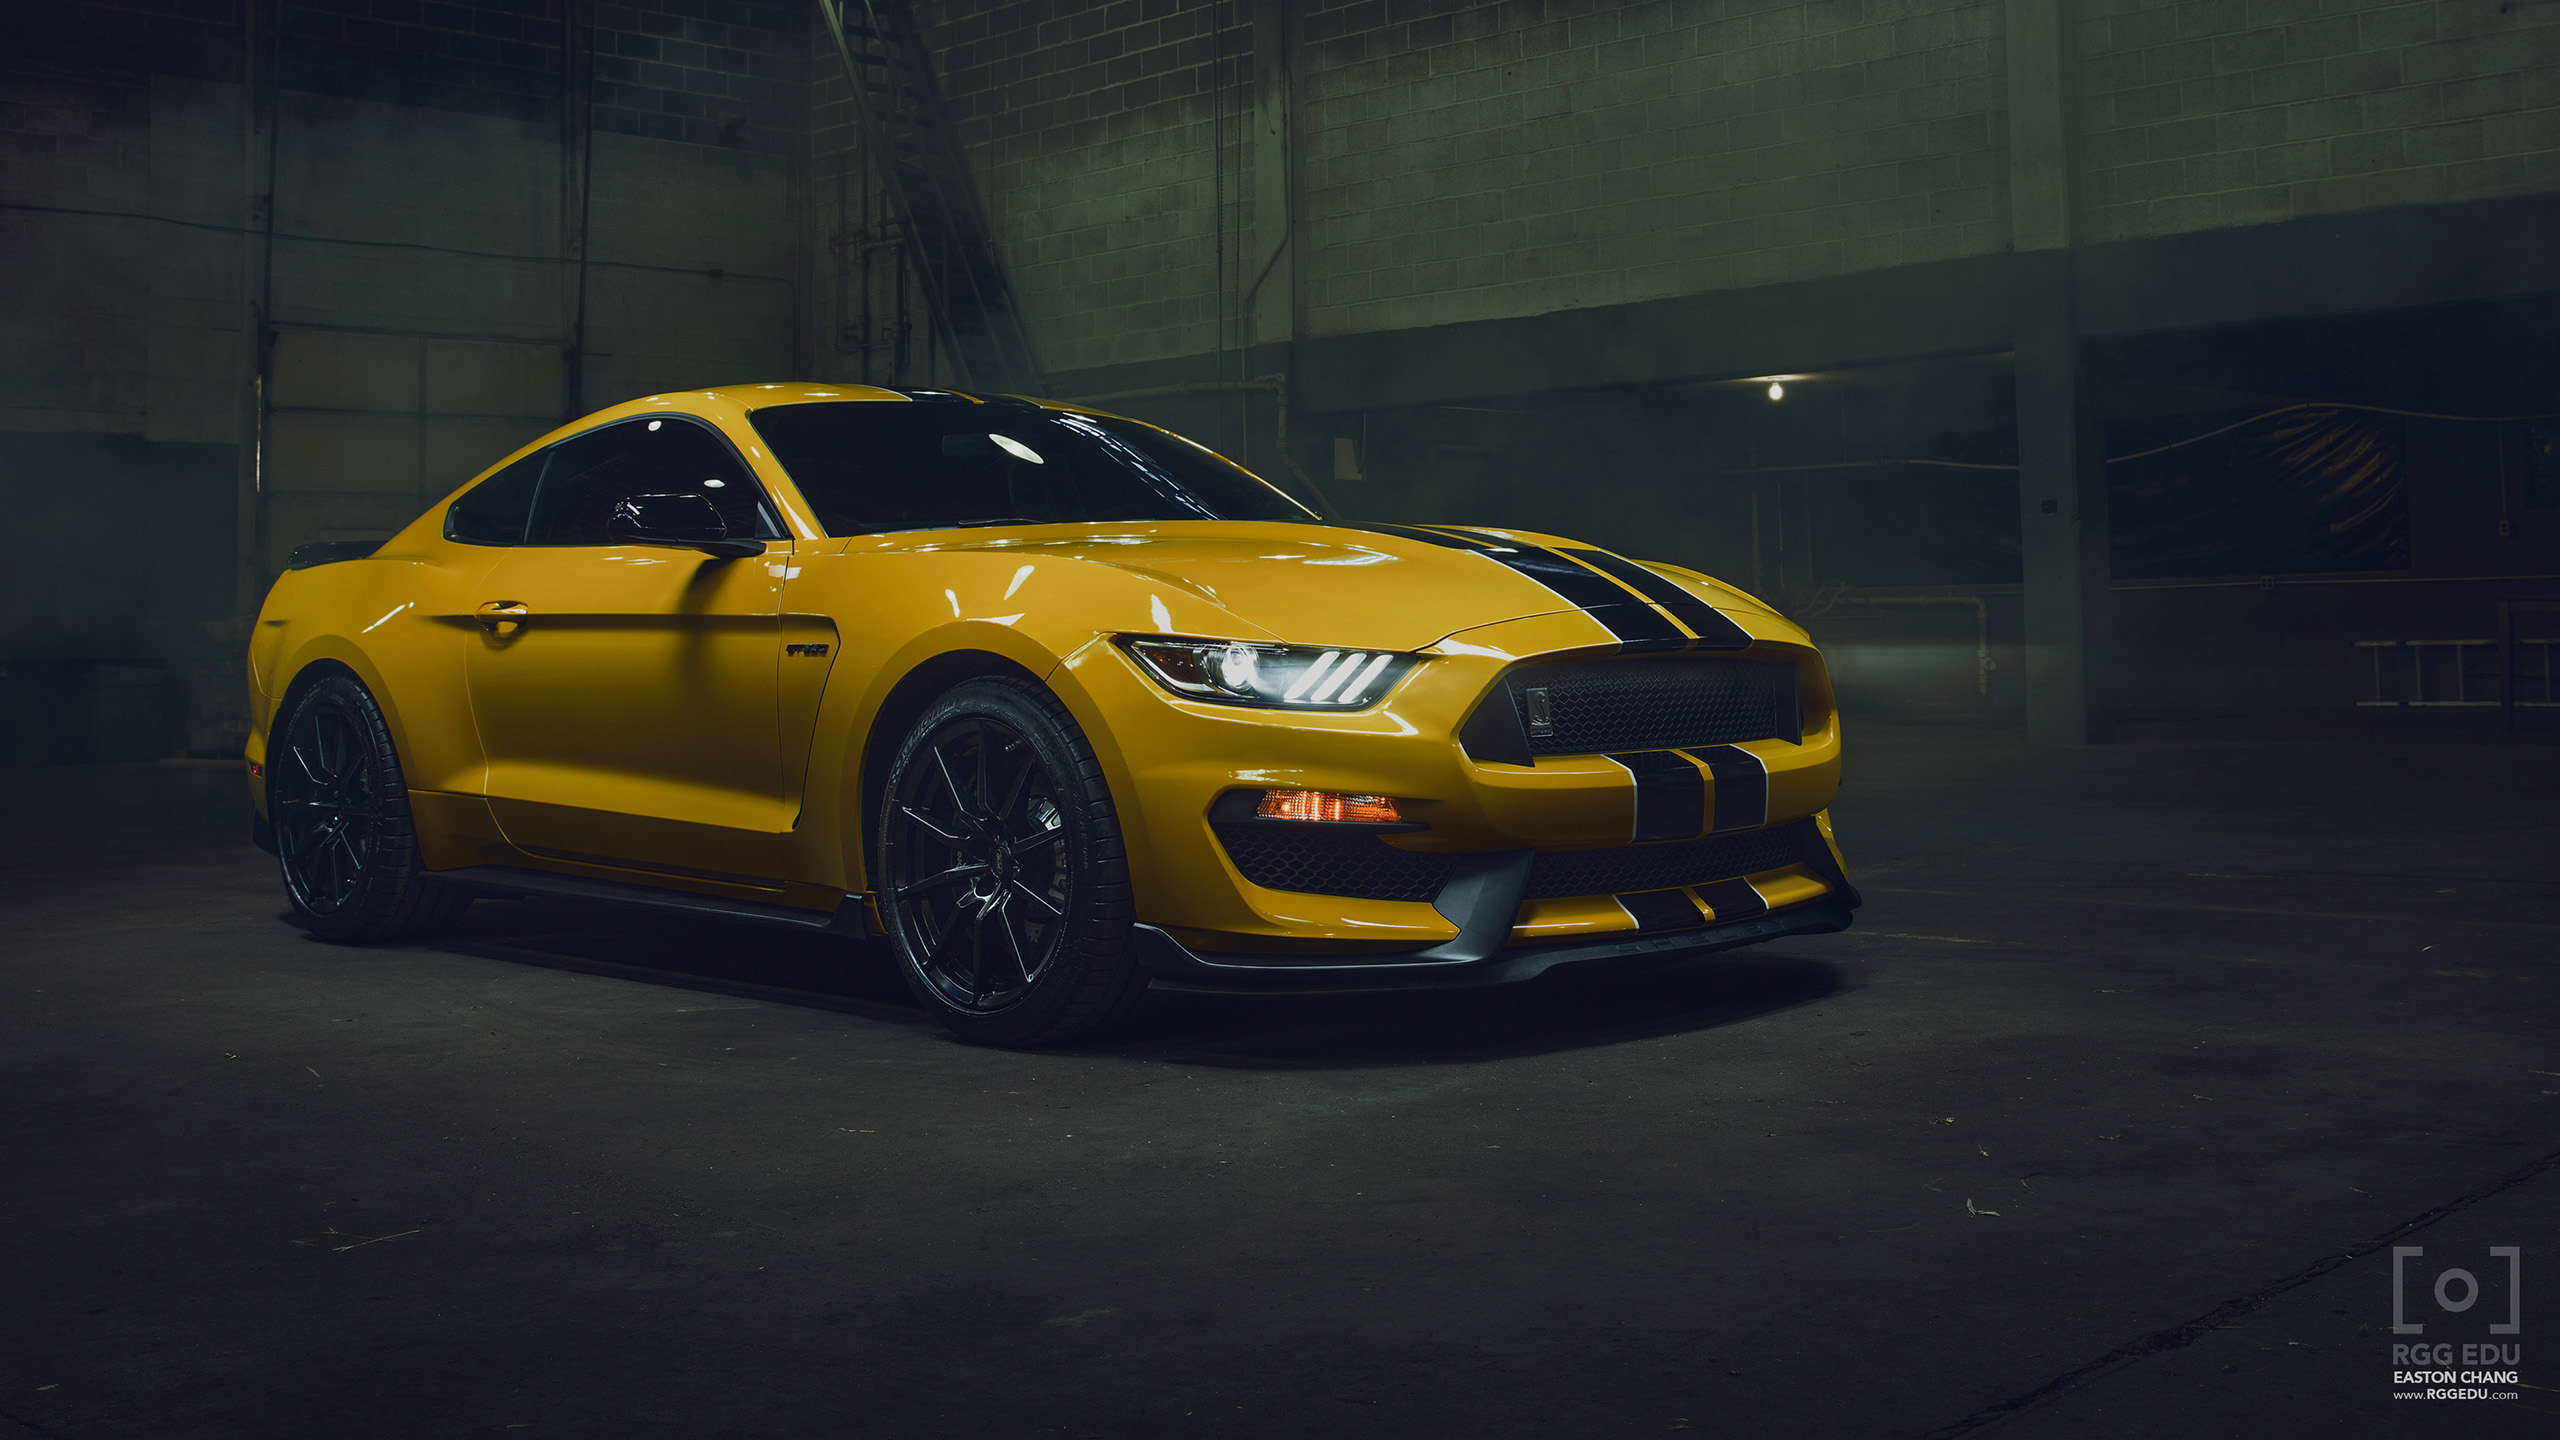 2560x1440 - Shelby Mustang GT 350 Wallpapers 18